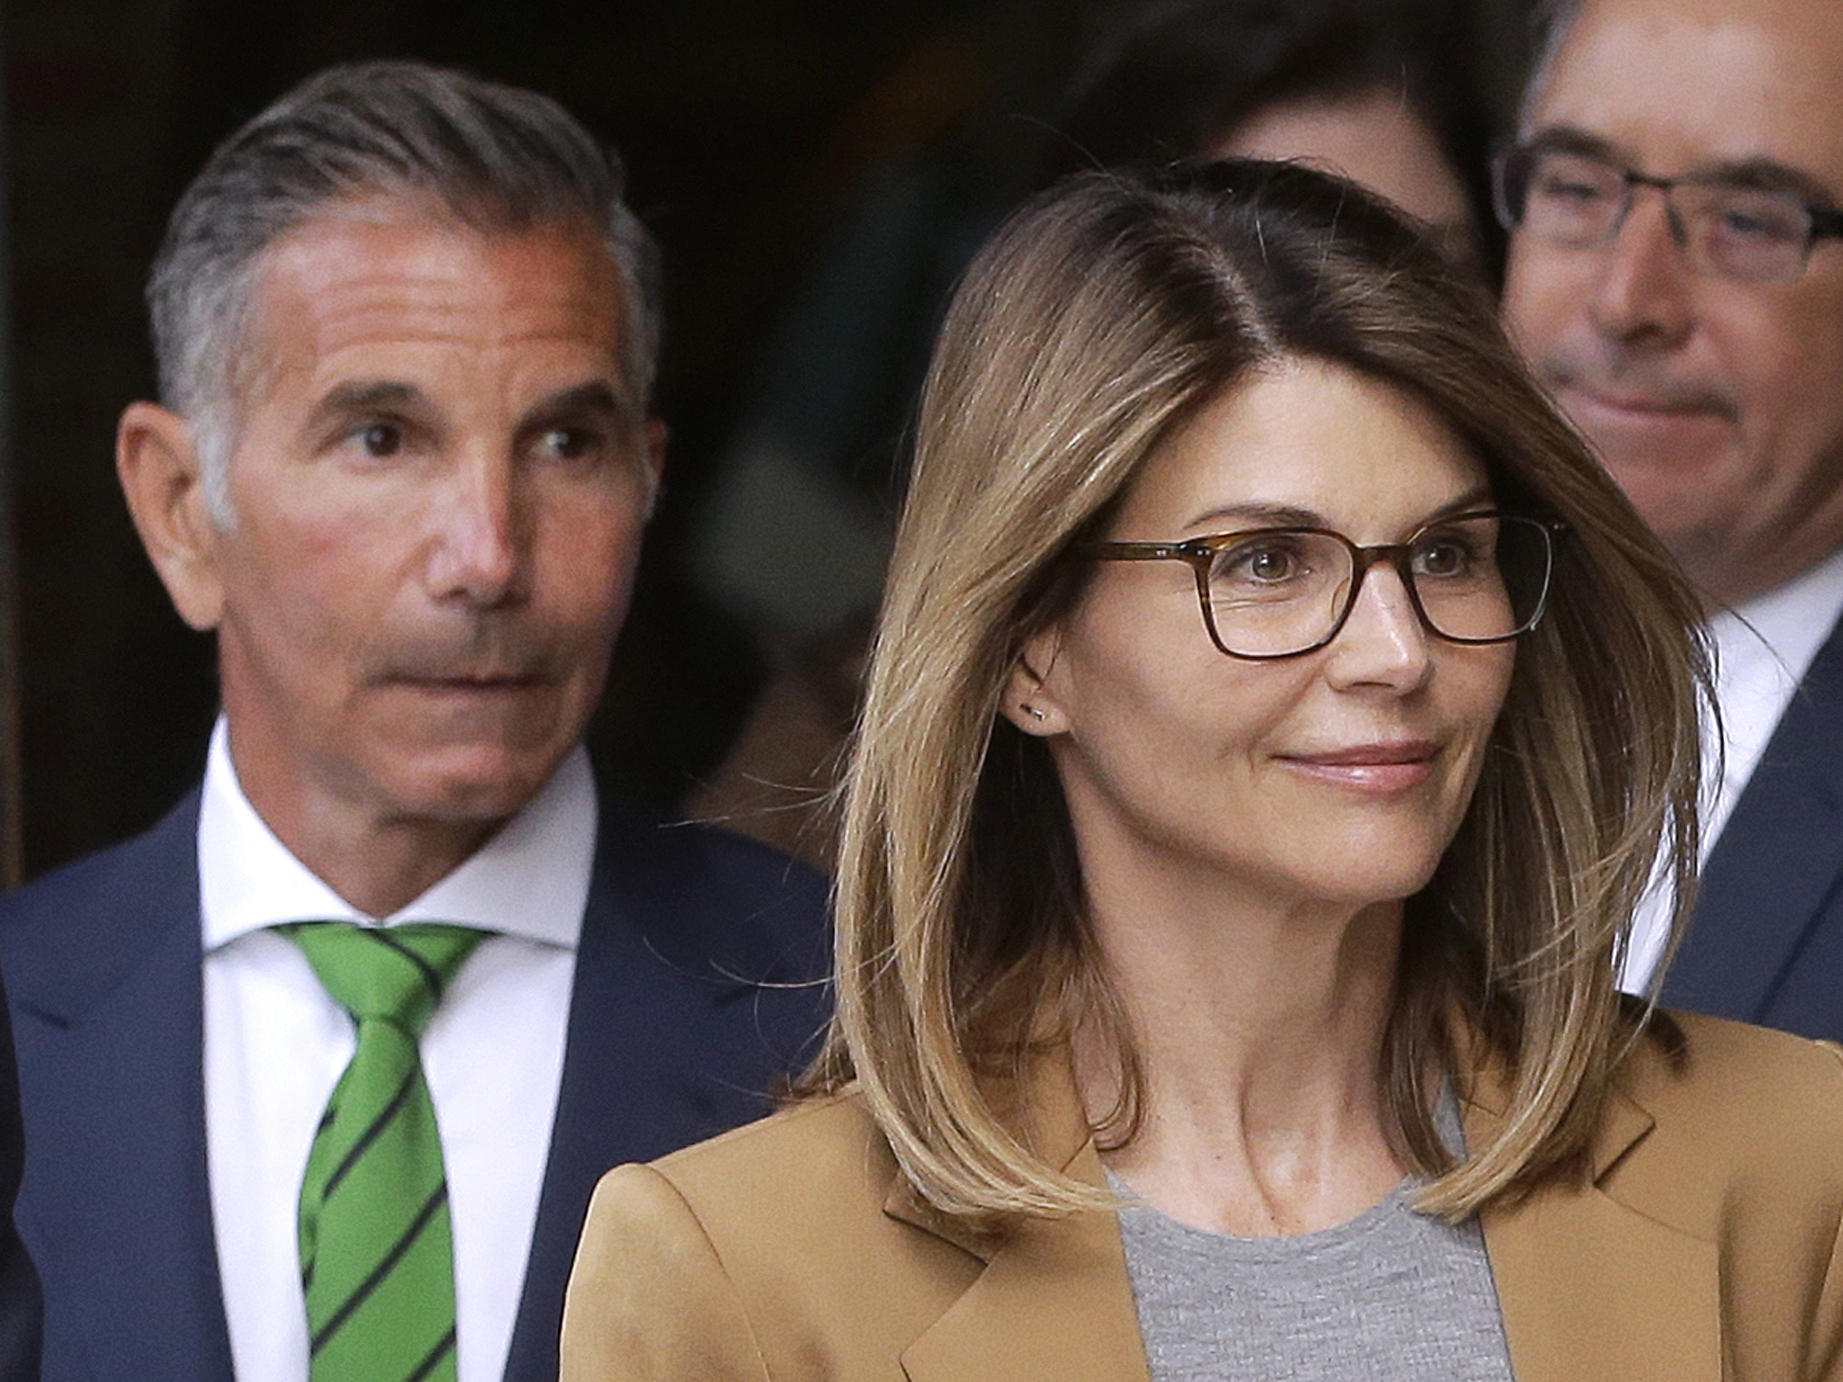 Actress Lori Loughlin and her husband, clothing designer Mossimo Giannulli (left), announced on Monday that they would plead not guilty to charges in the Justice Department's college admissions case. Here, they leave federal court in Boston earlier this month.